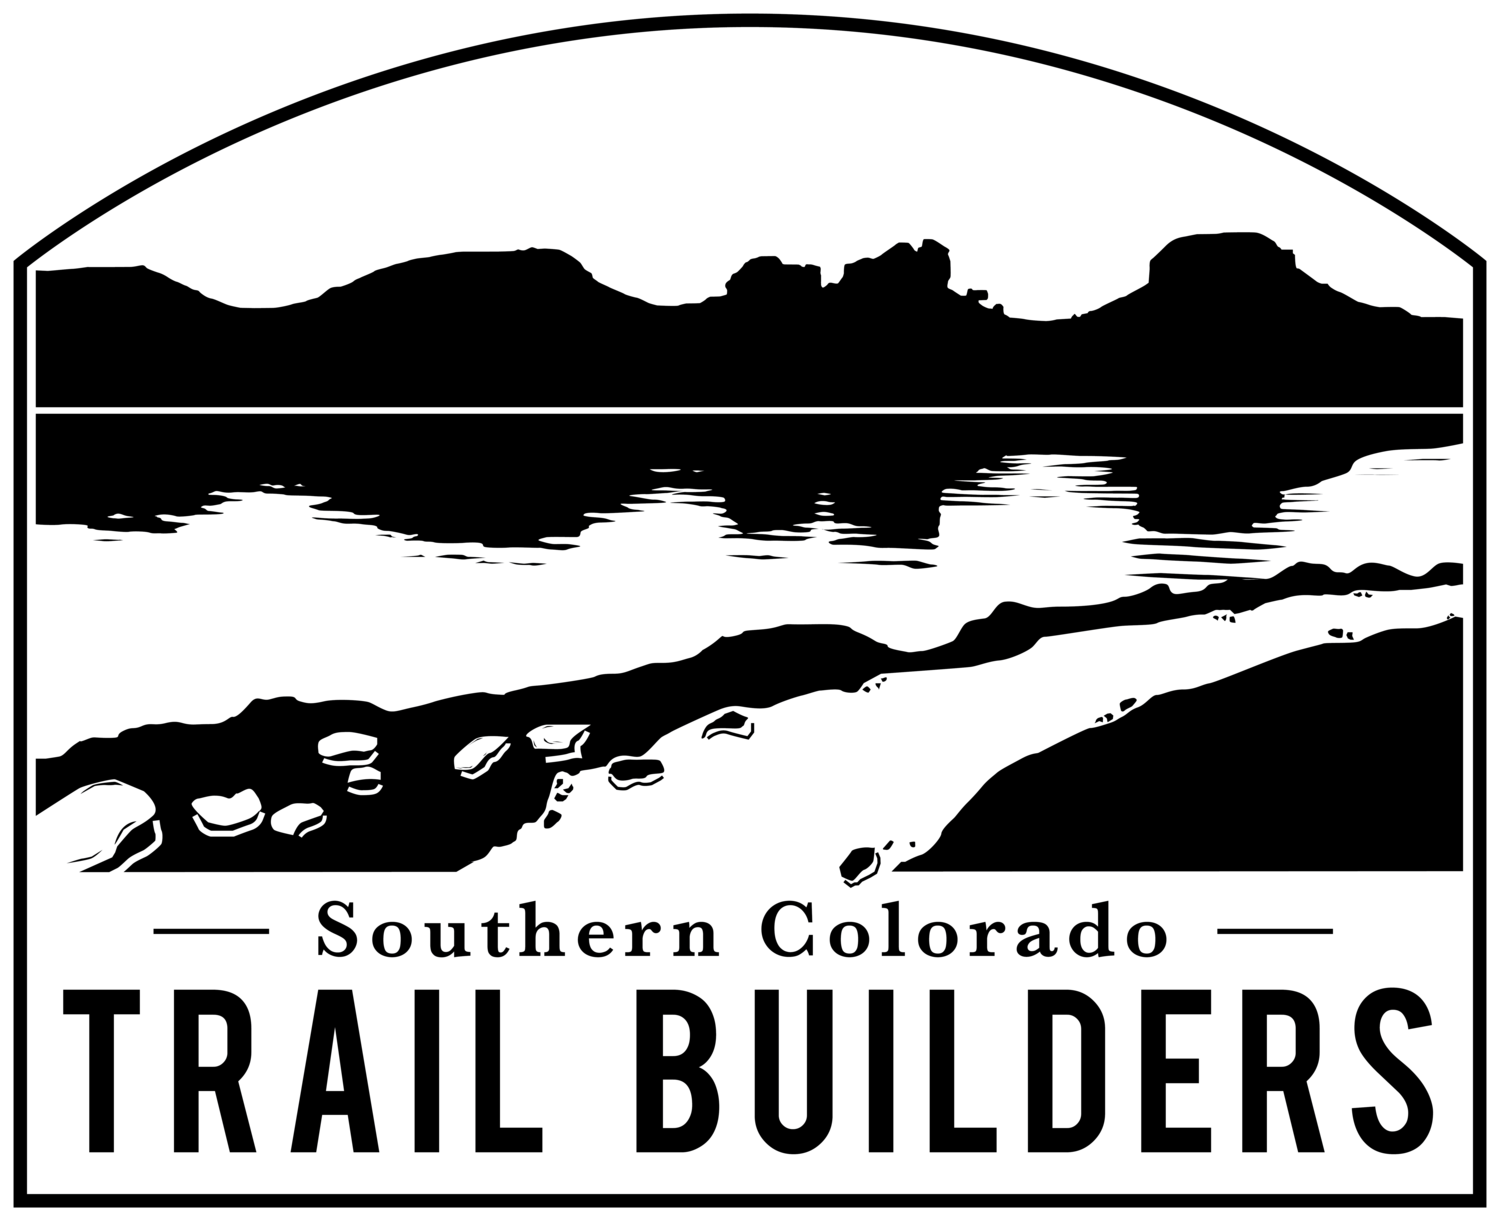 Southern Colorado Trail Builders